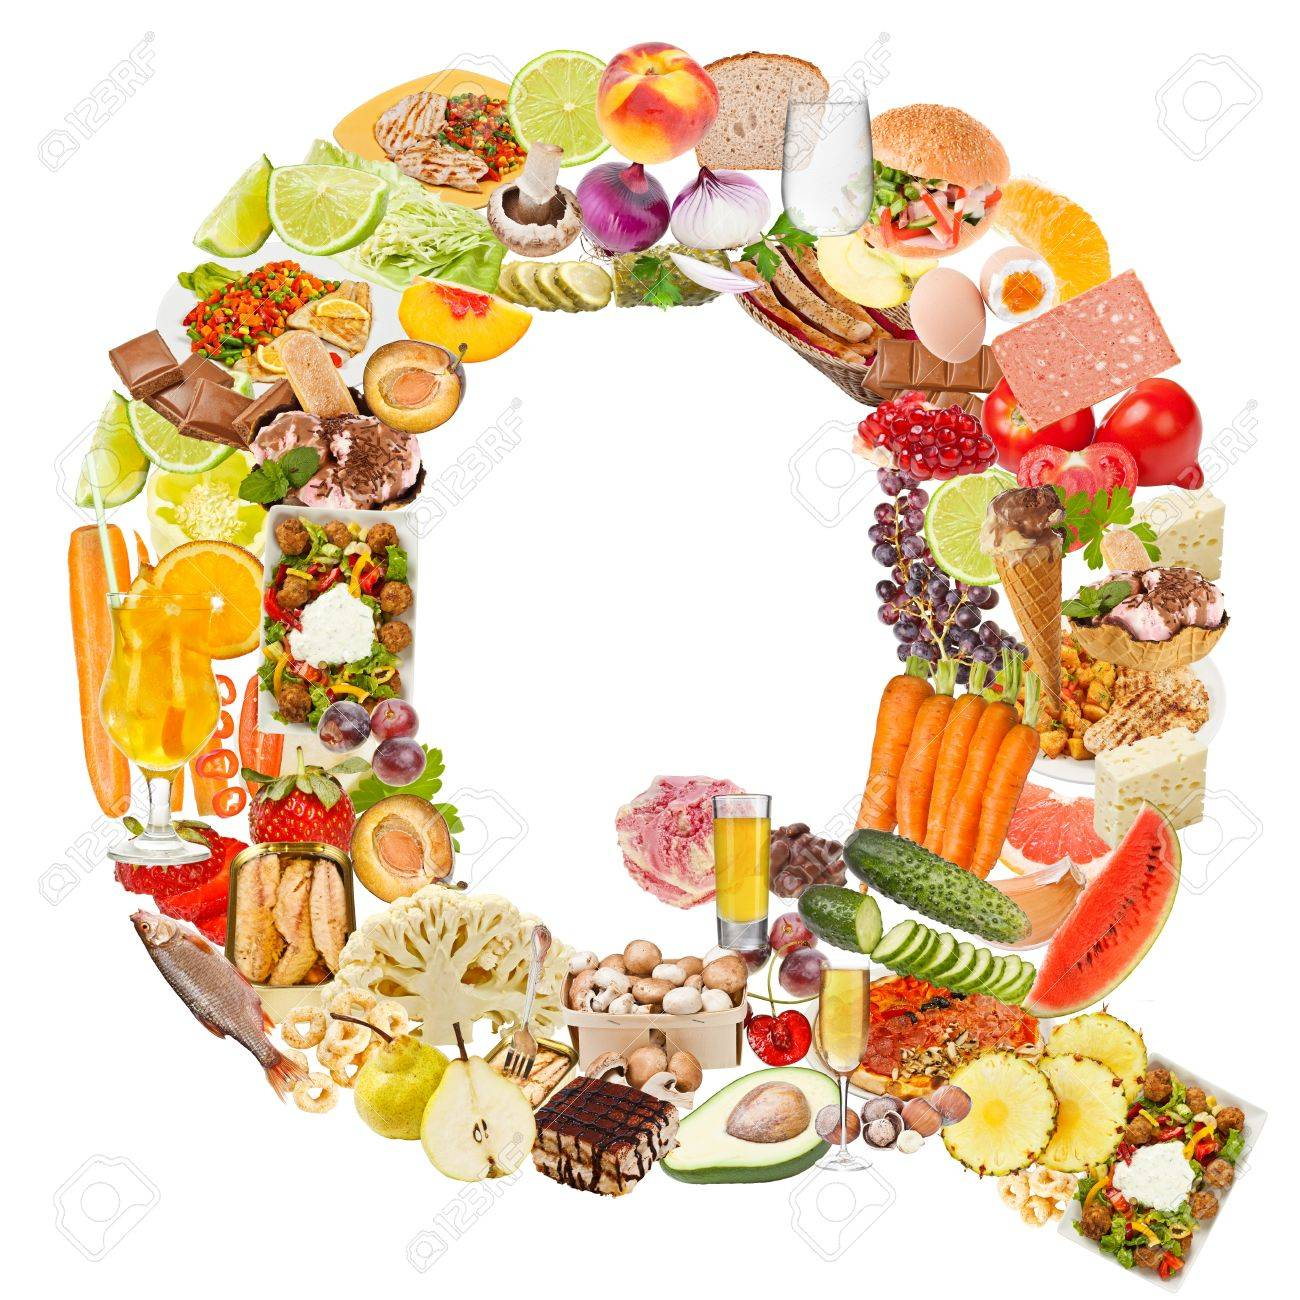 Letter Q Made Of Food Isolated On White Background Stock Photo